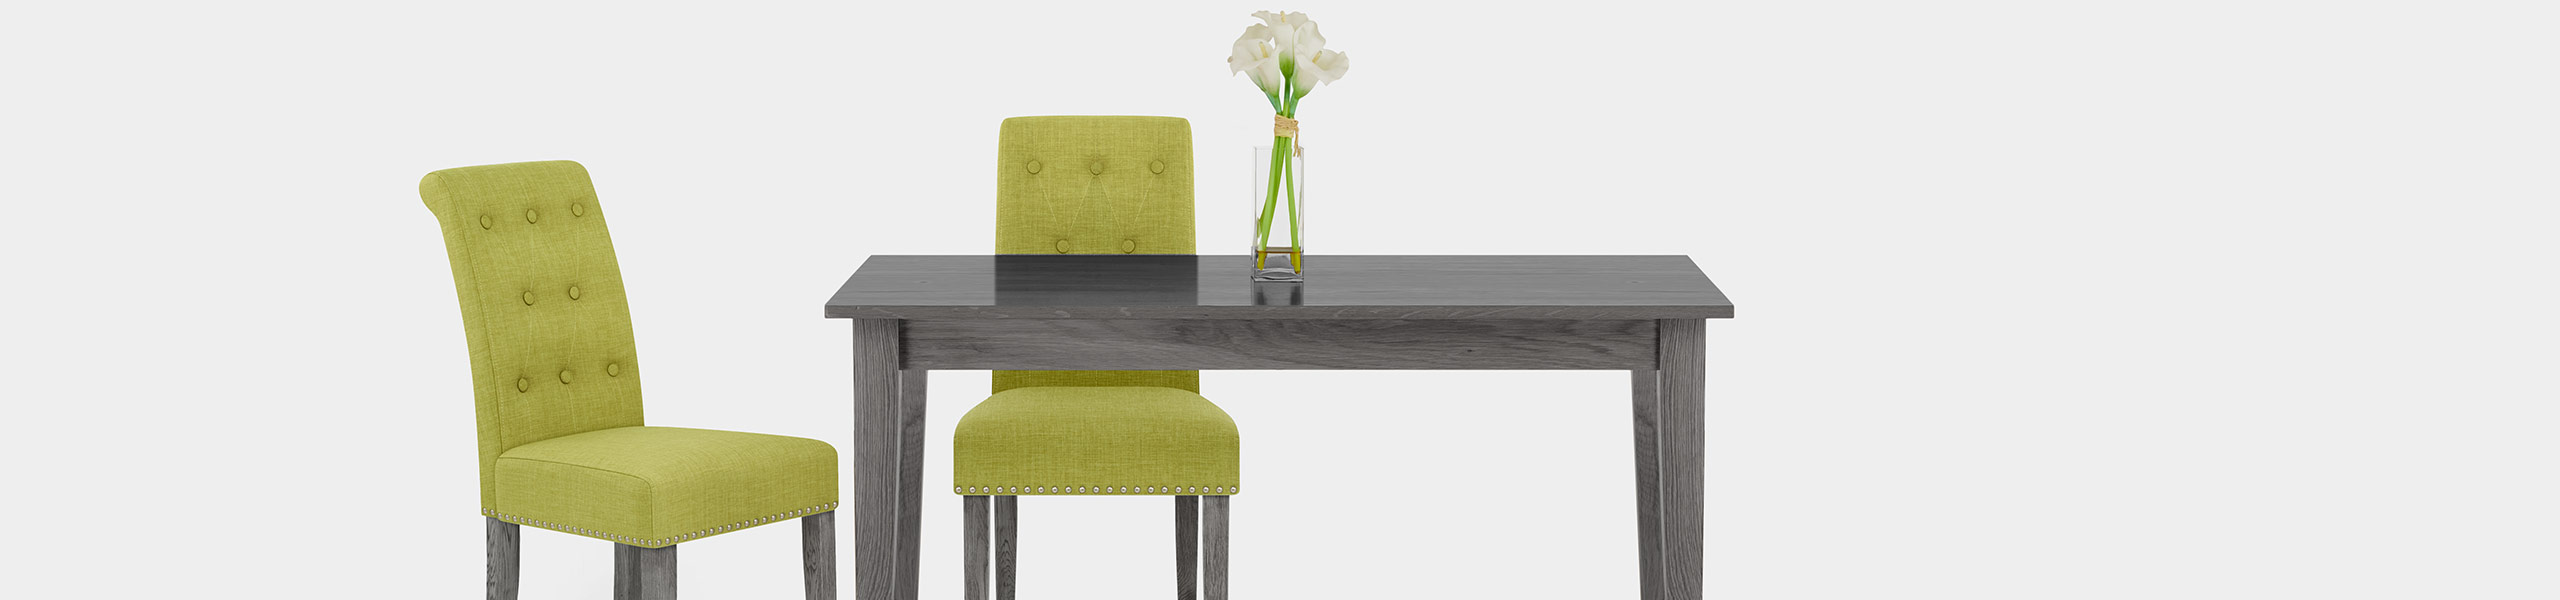 Moreton Dining Chair Green Fabric Video Banner